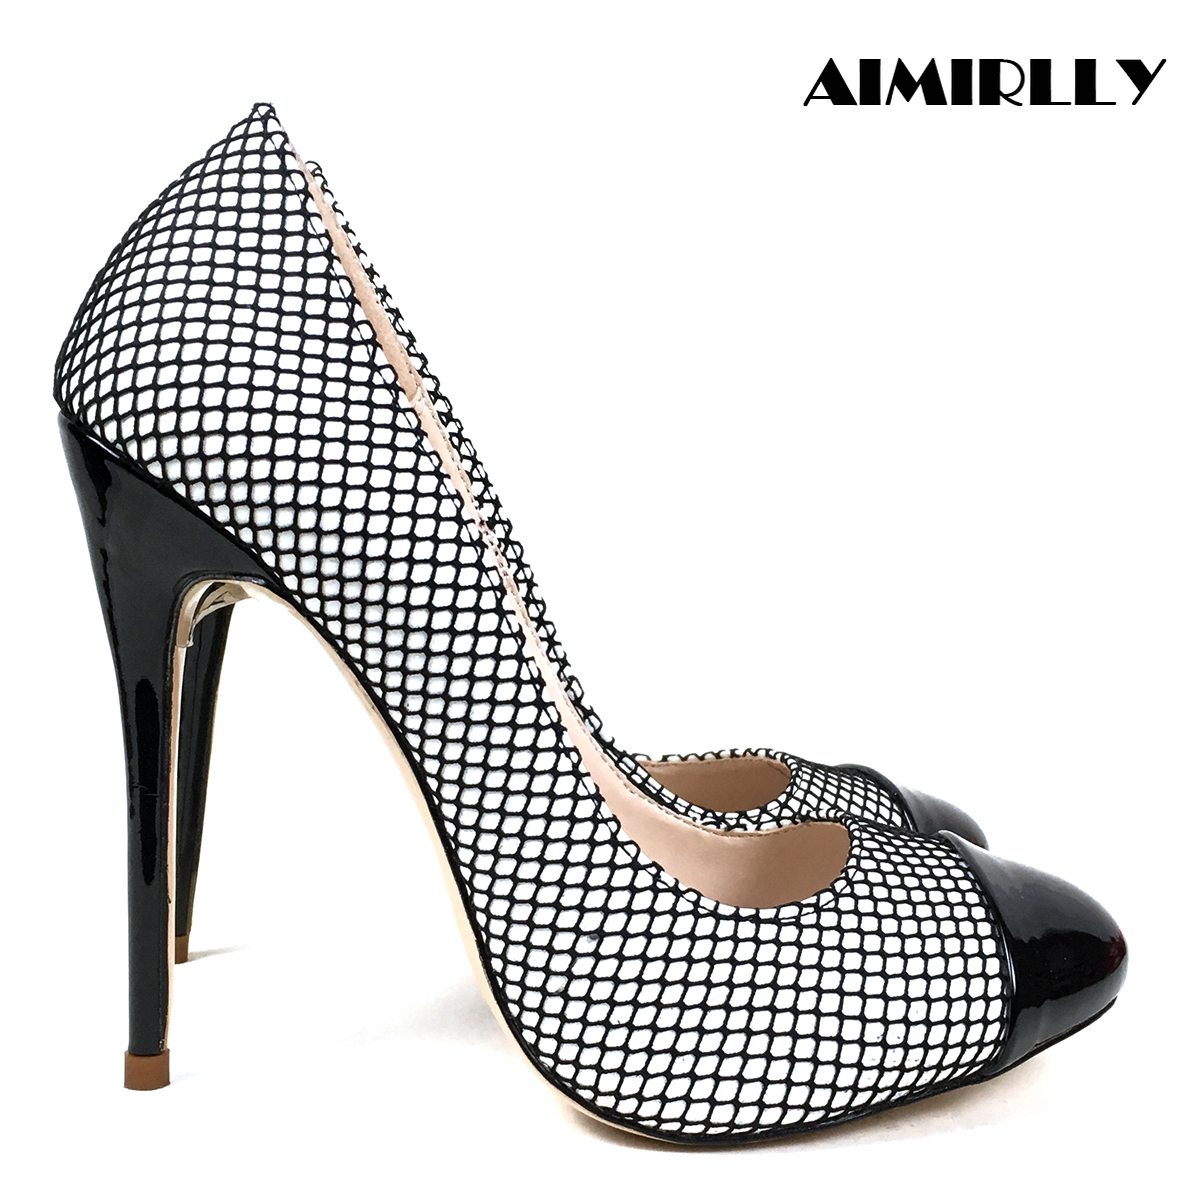 Aimirrly Women Shoes High Heels Pumps Round Toe Formal Evening Party Wedding Dress Shoes Black Mesh